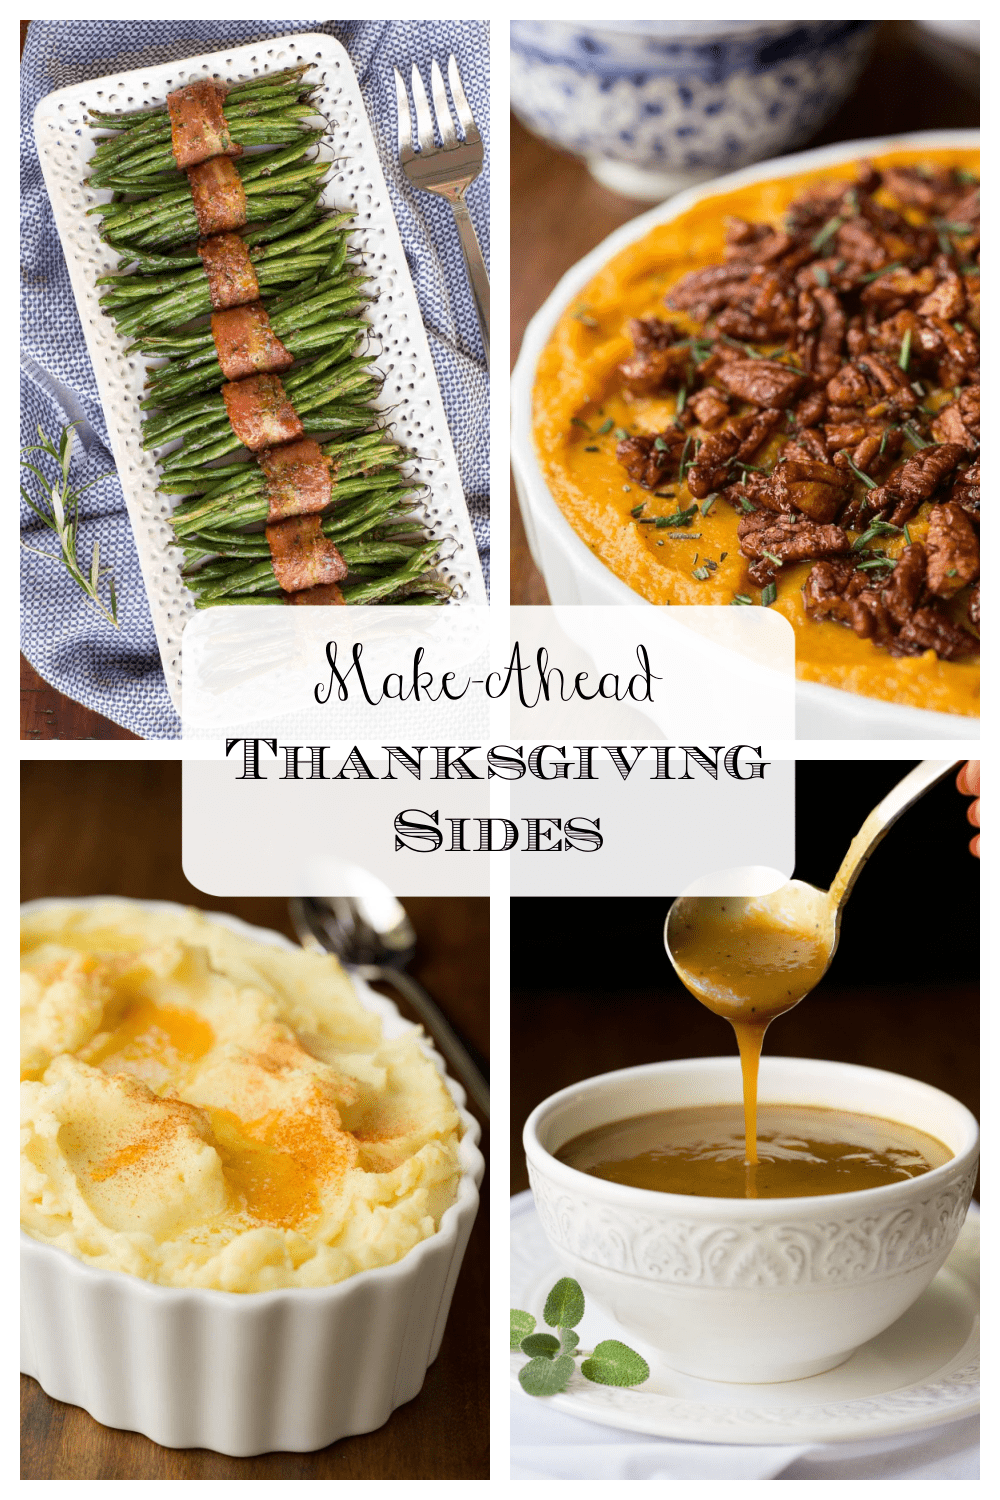 Sensational Sides for a Thanksgiving Feast!